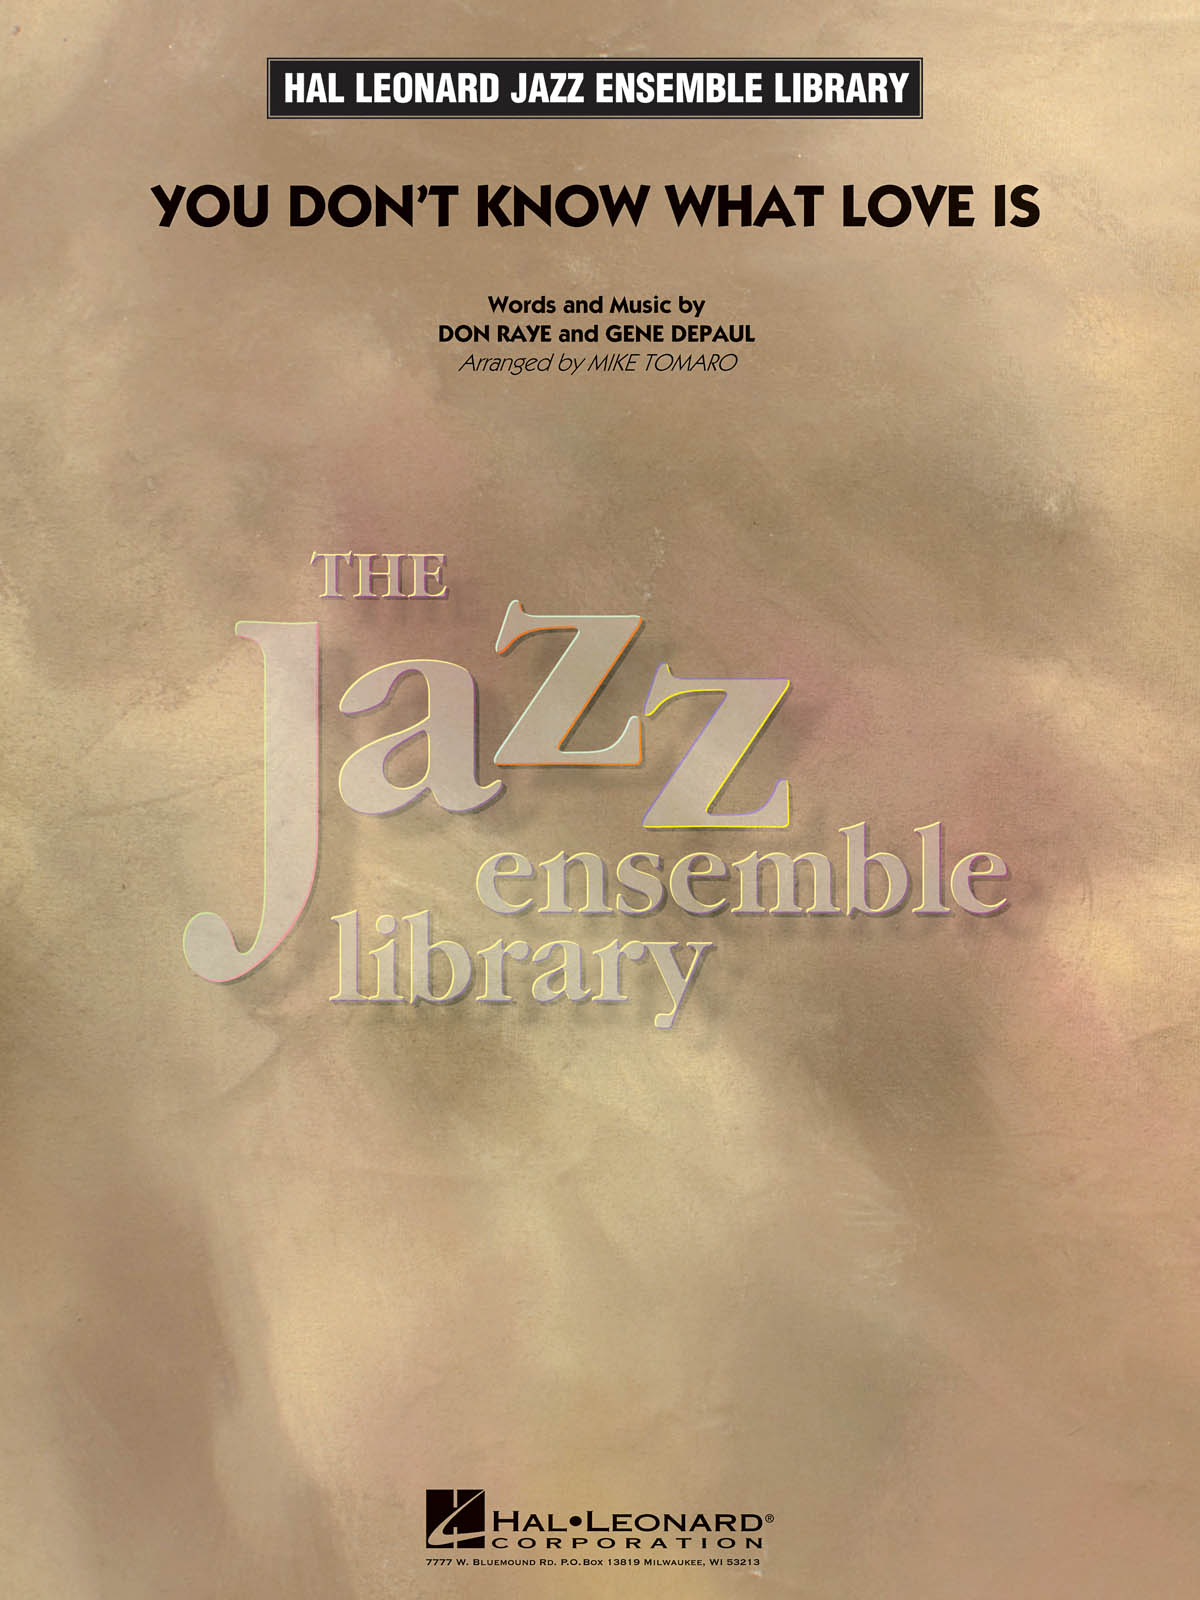 You Don't Know What Love Is: The Jazz Ensemble Library